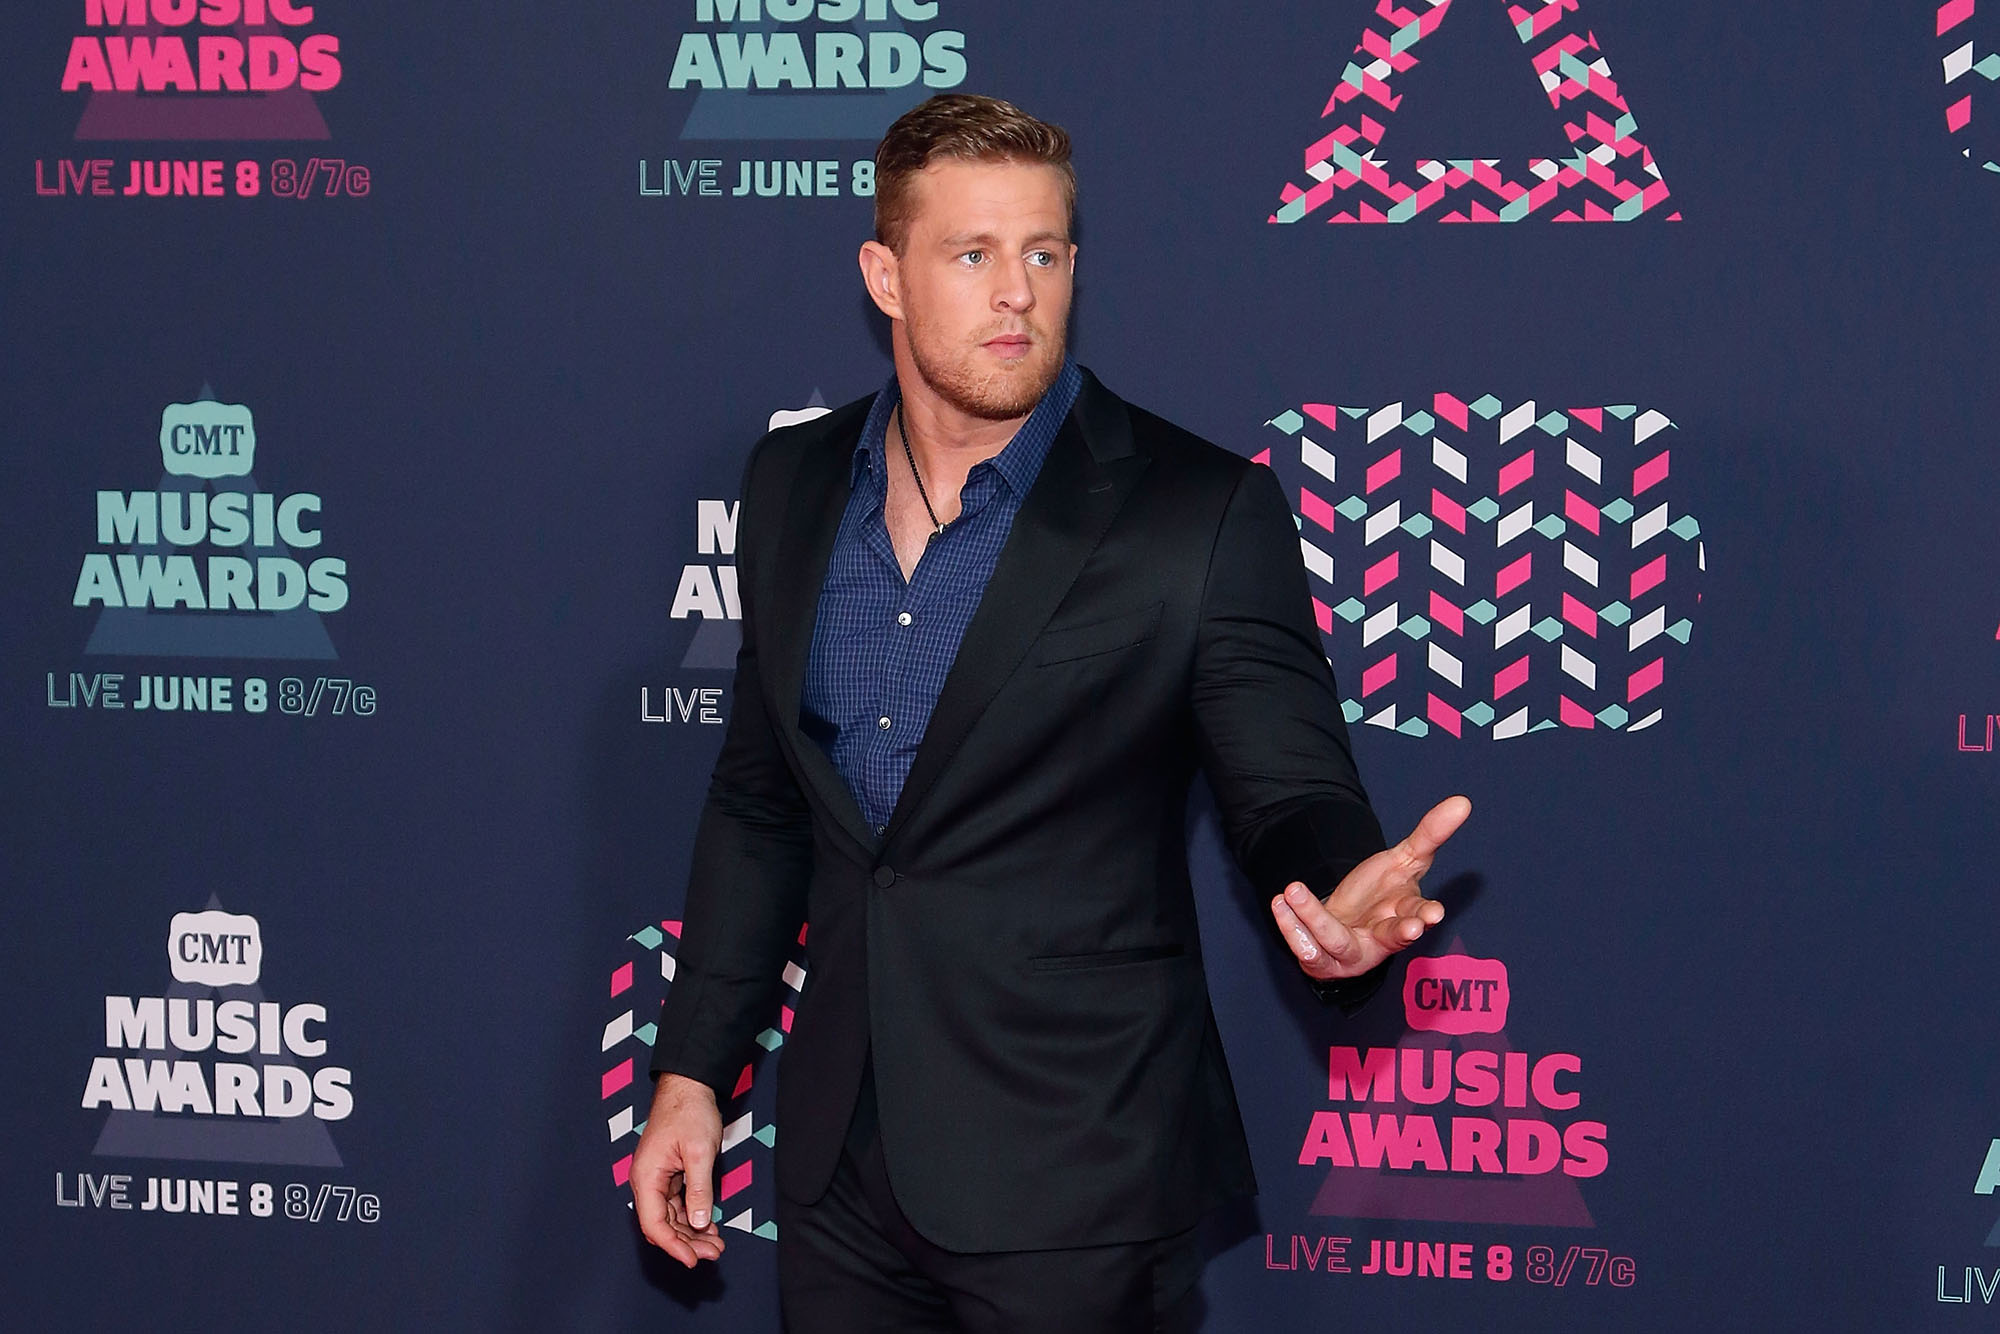 J.J. Watt attends the 2016 CMT Music awards at the Bridgestone Arena on June 8, 2016 in Nashville, Tennessee.  (Photo by Taylor Hill/FilmMagic)